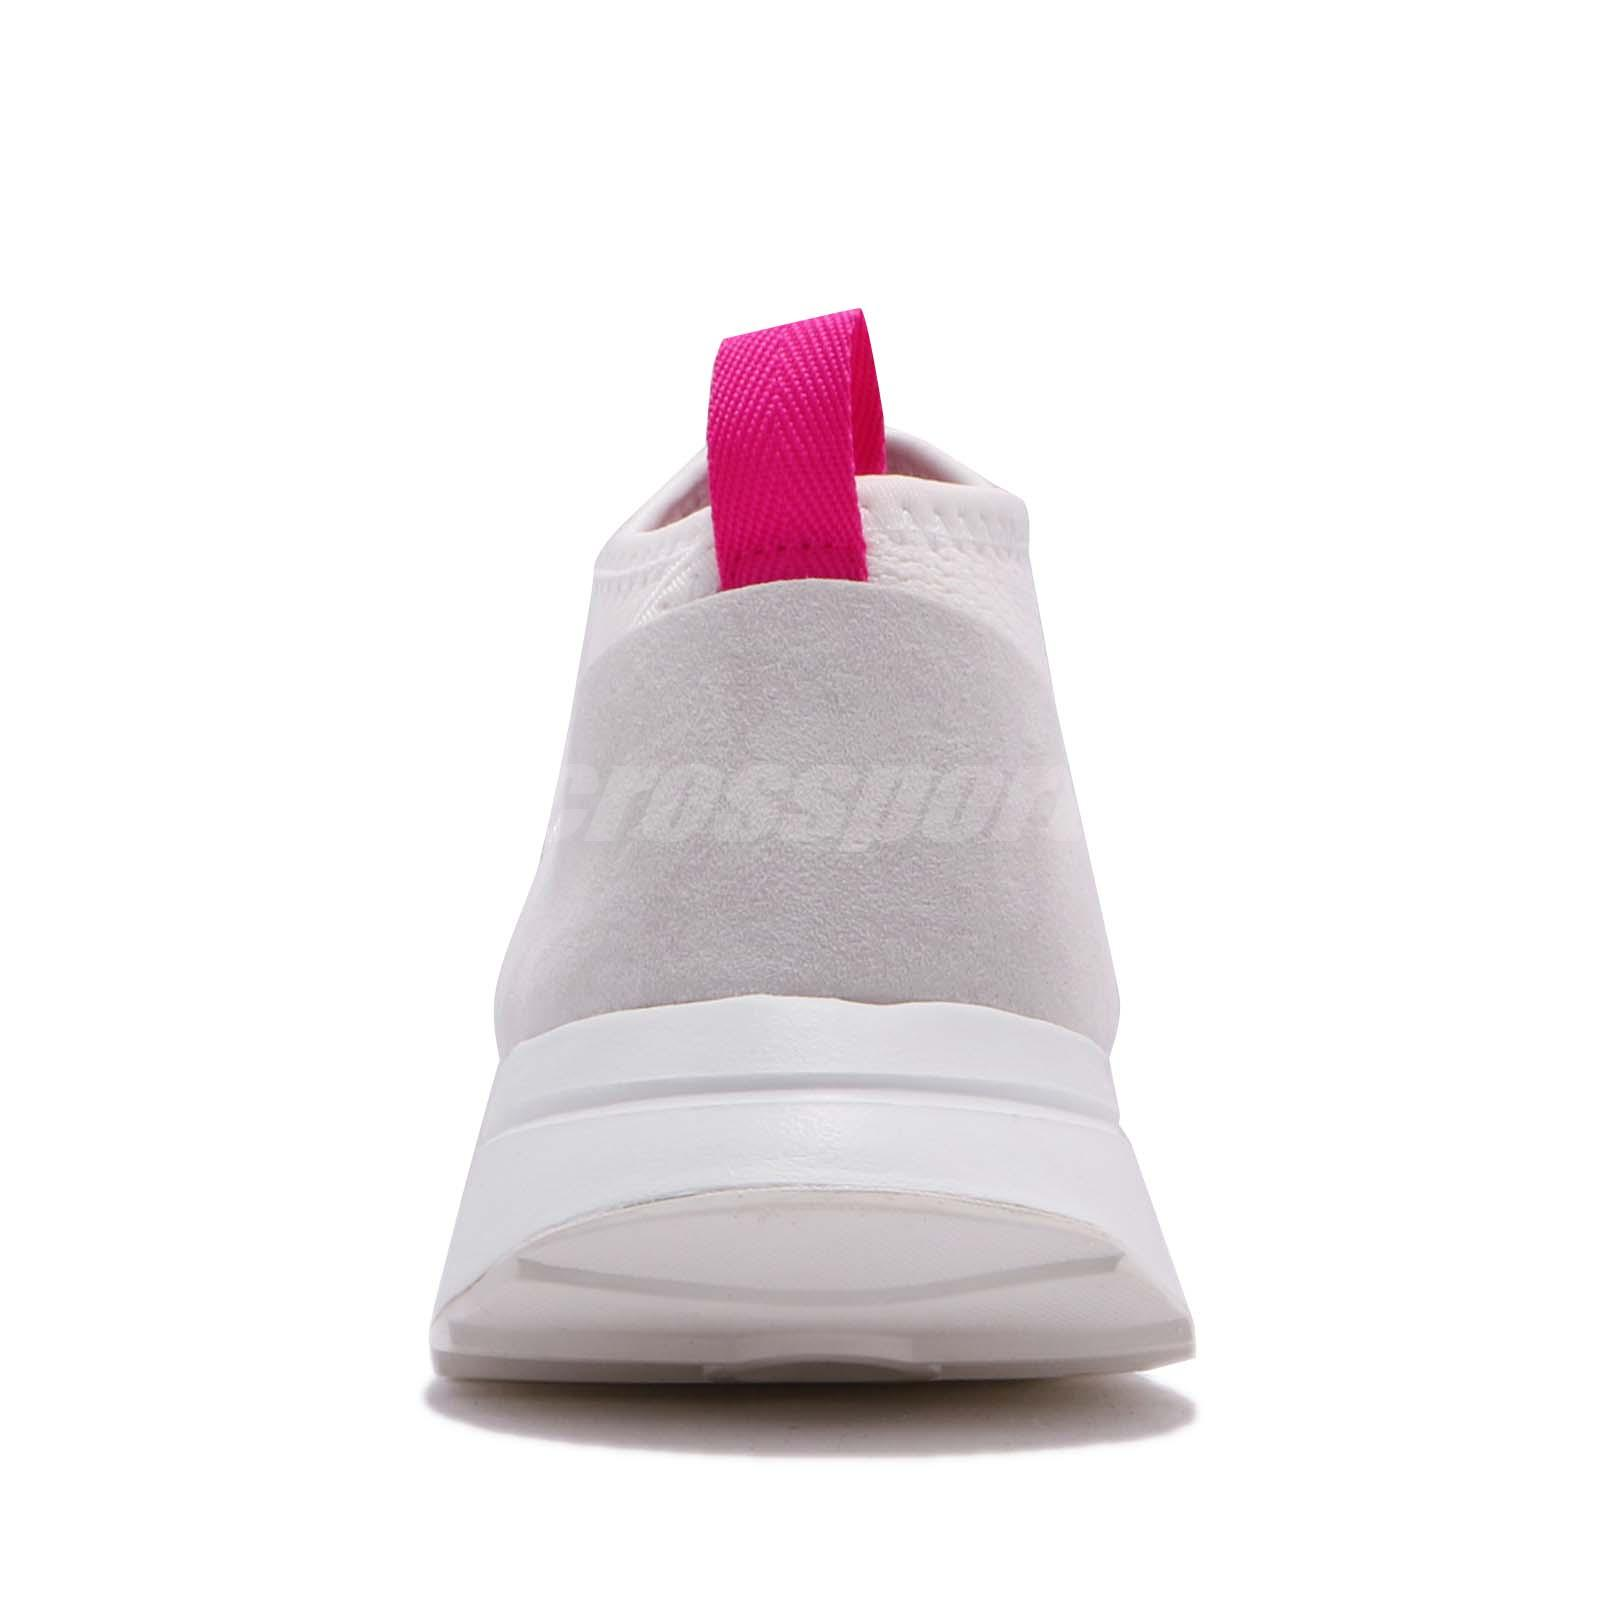 07c4c433e86613 adidas Originals FLB Mid Flashback White Pink Women Shoes Sneakers ...